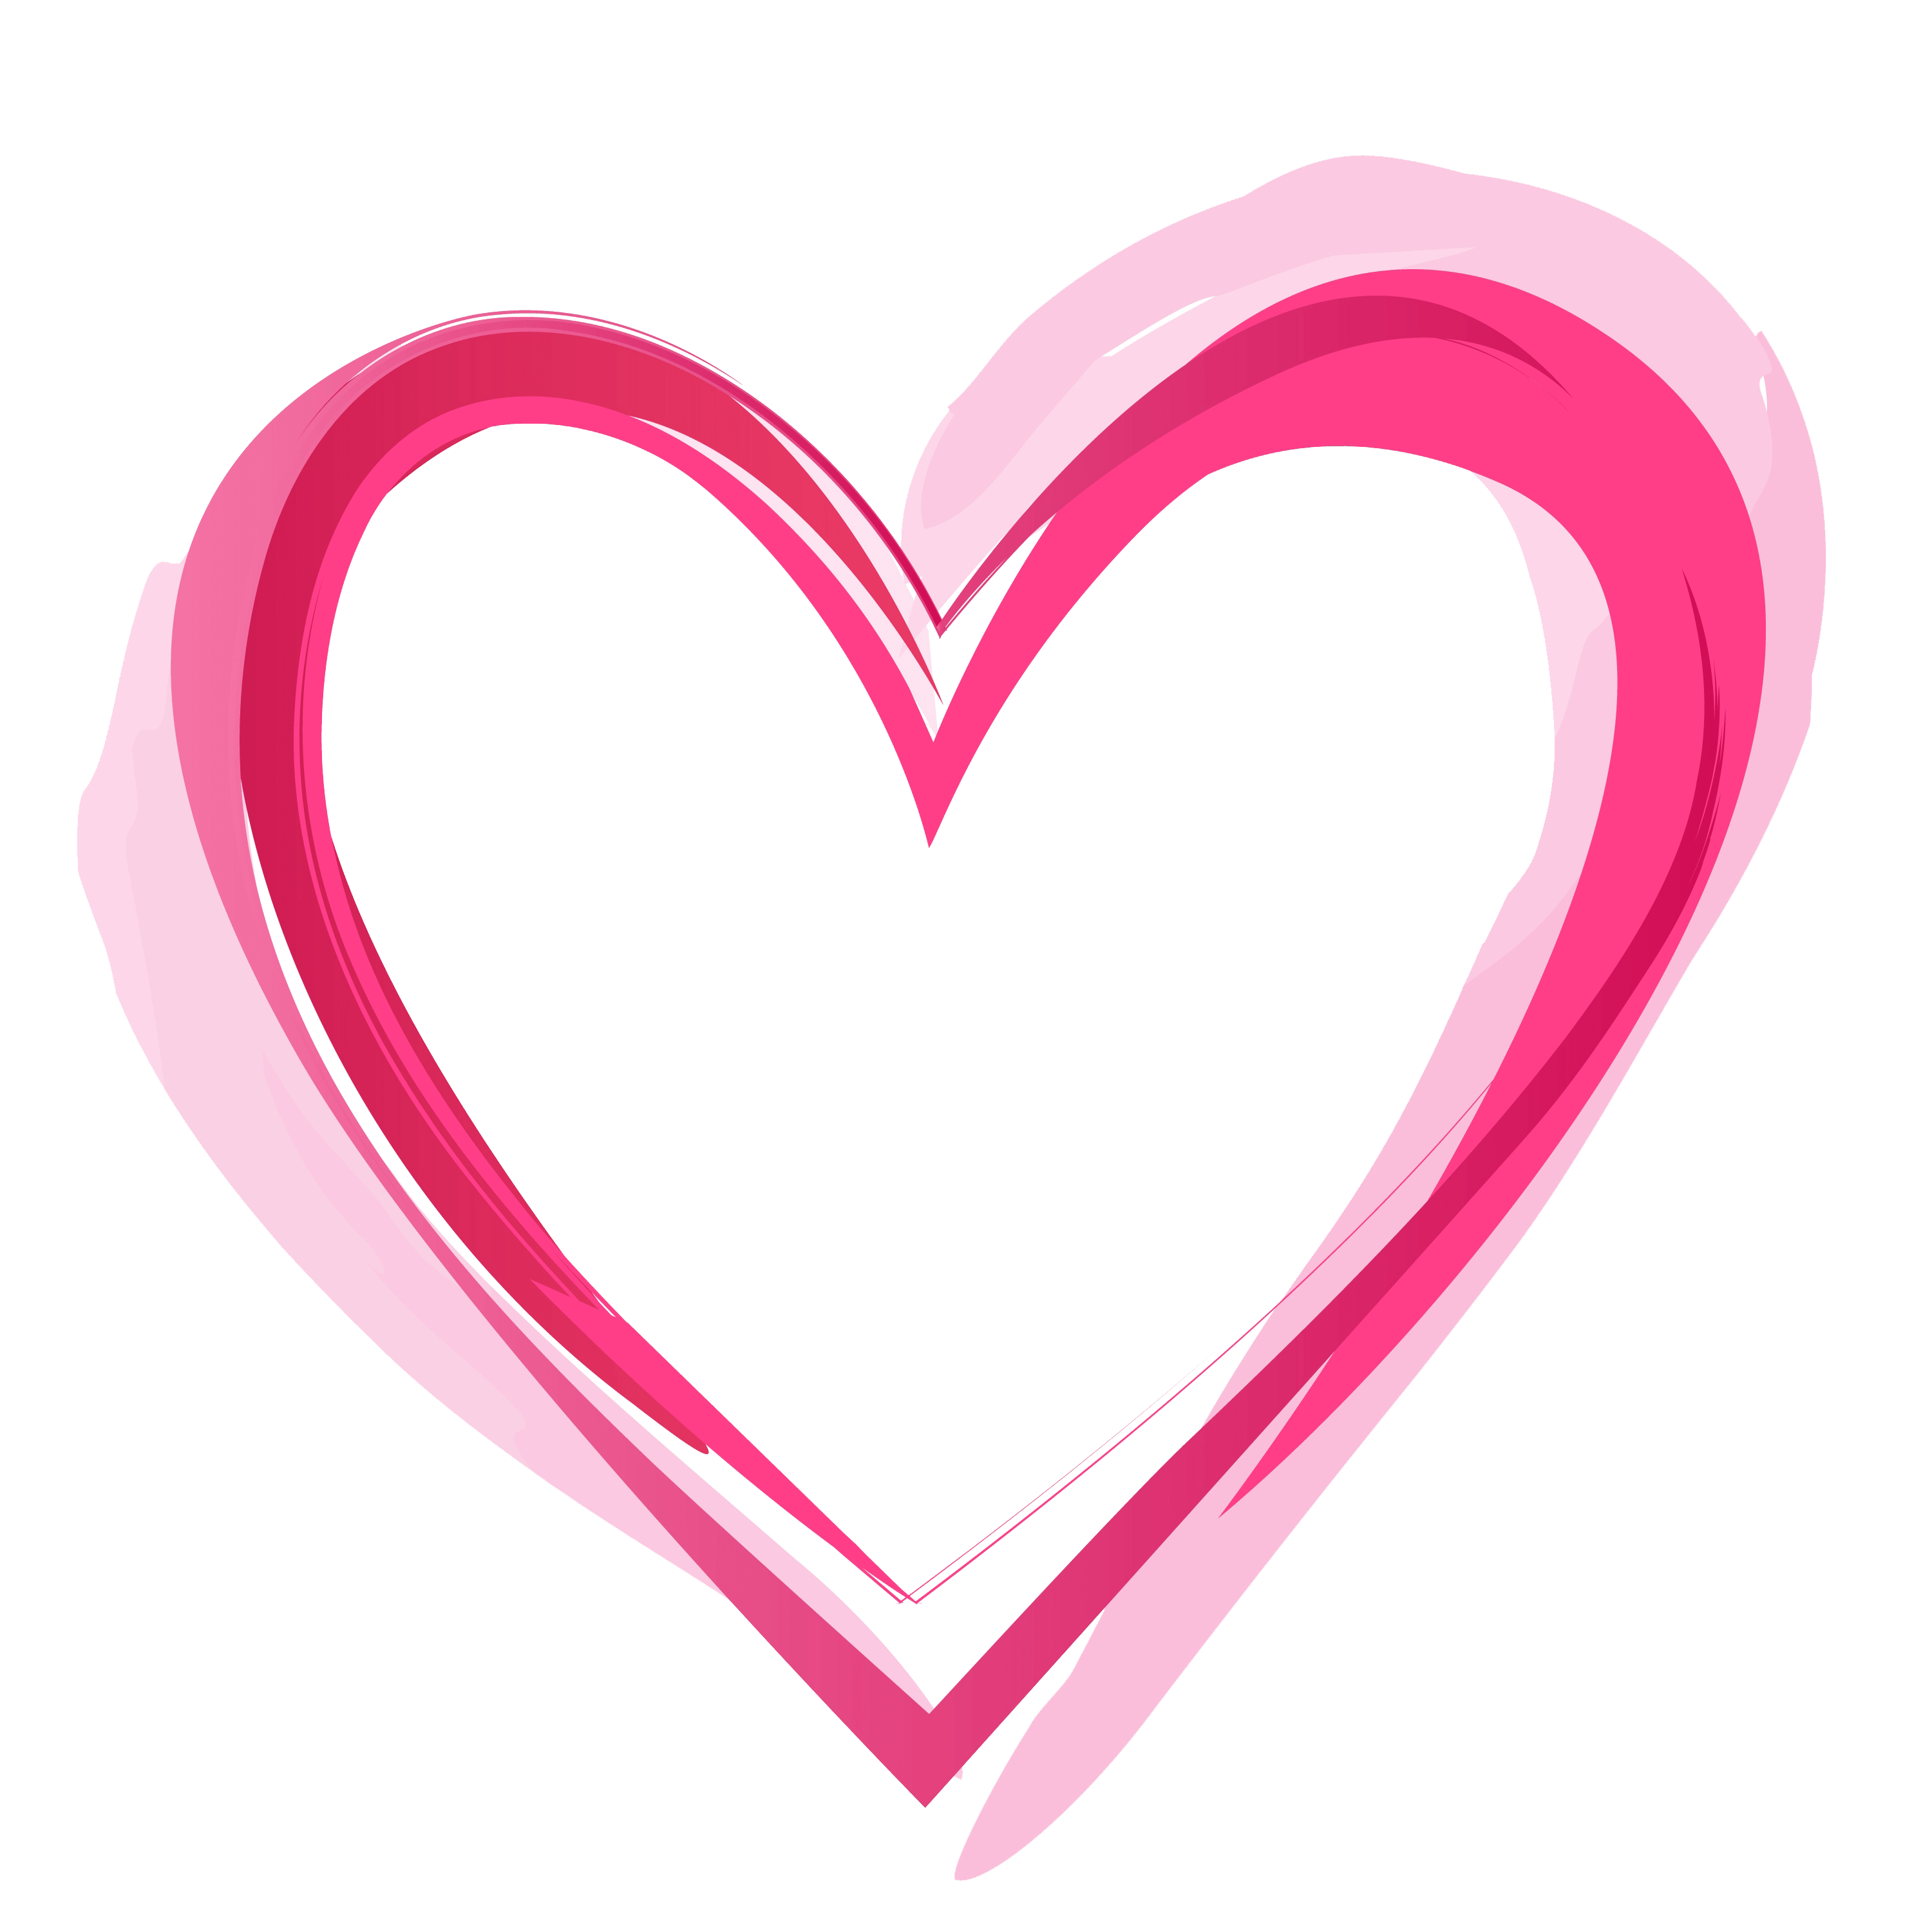 Heart pic . Pink hearts png